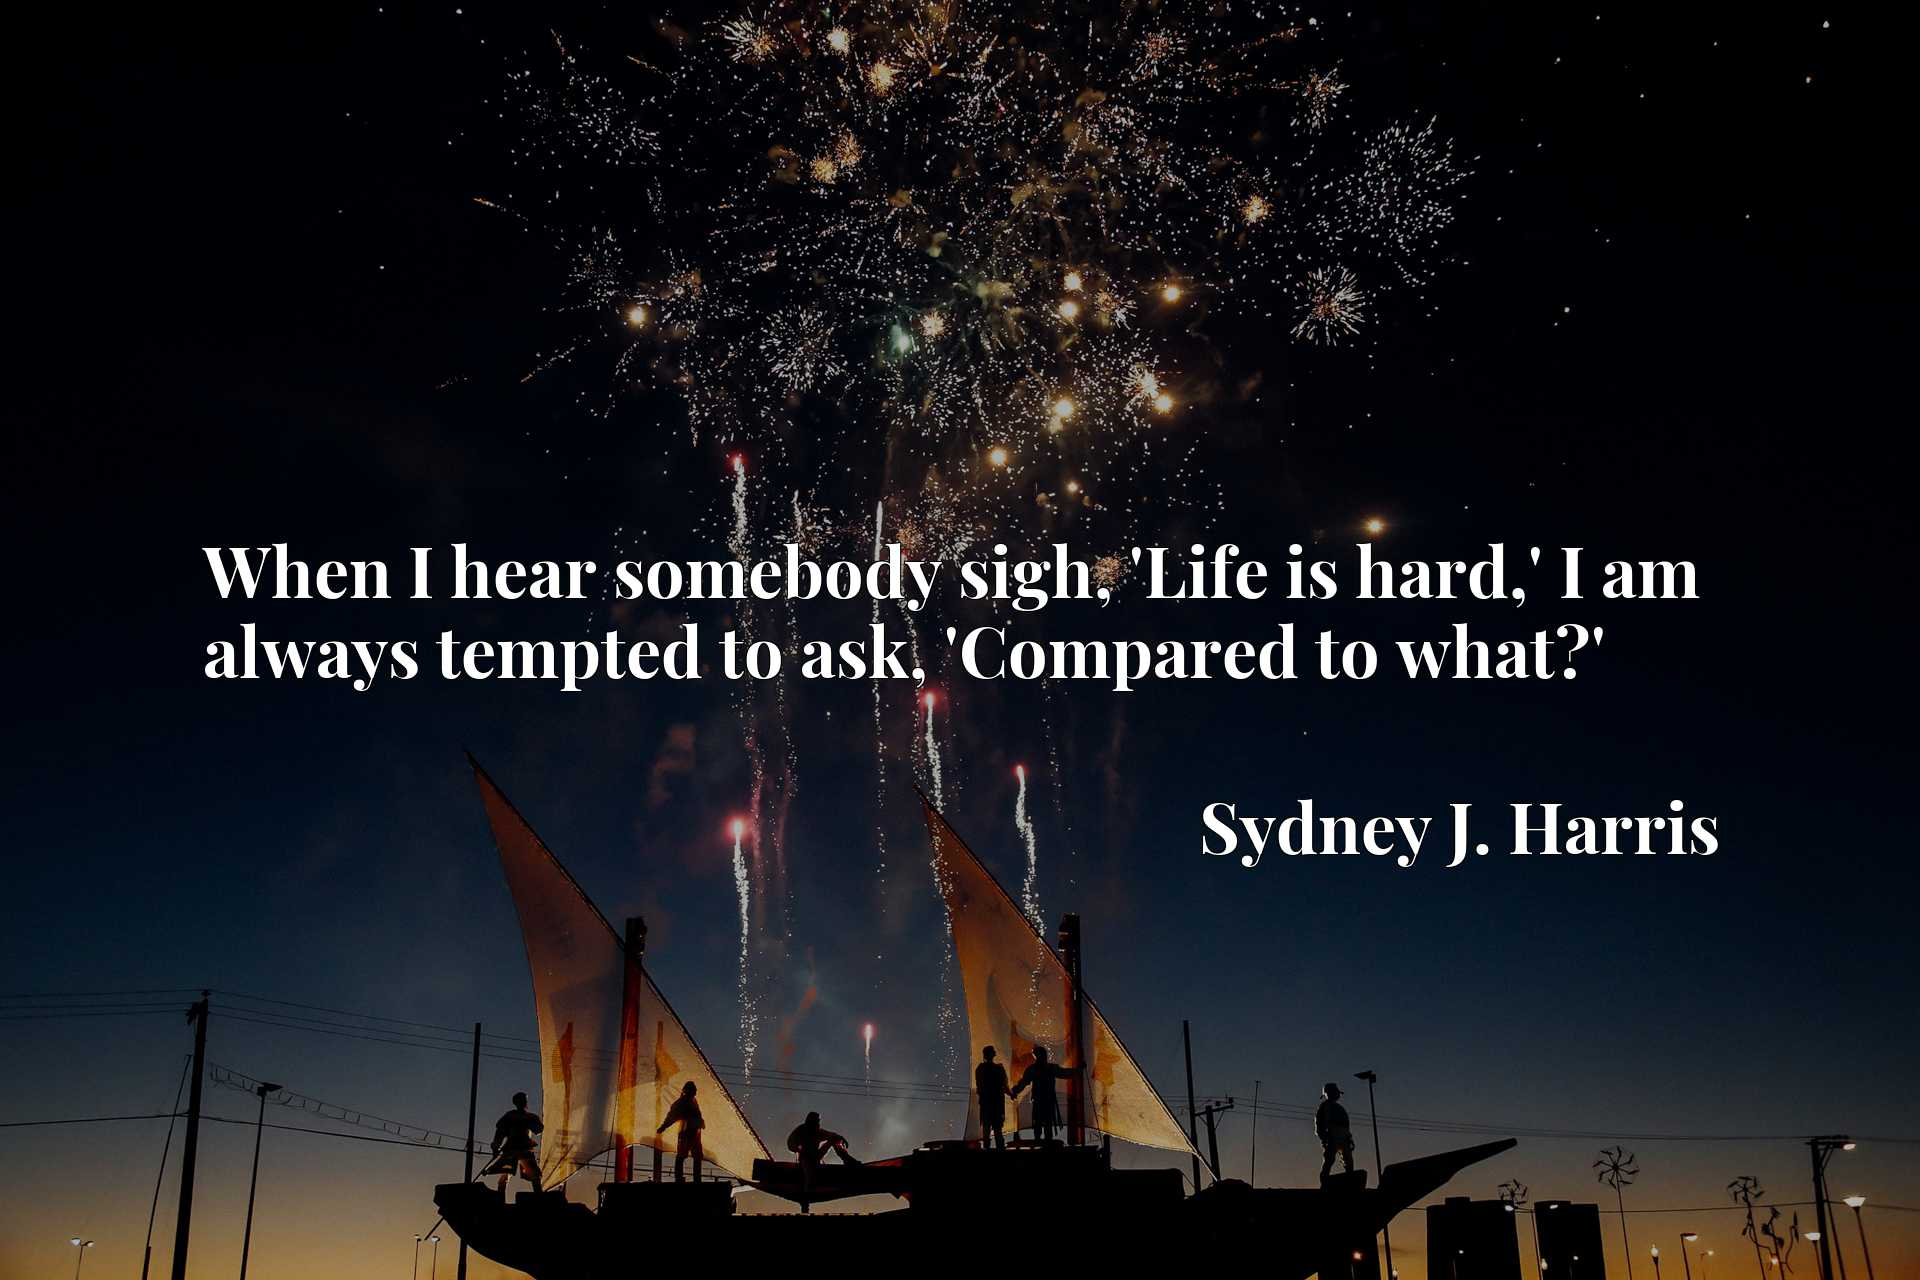 Quote Picture :When I hear somebody sigh, 'Life is hard,' I am always tempted to ask, 'Compared to what?'